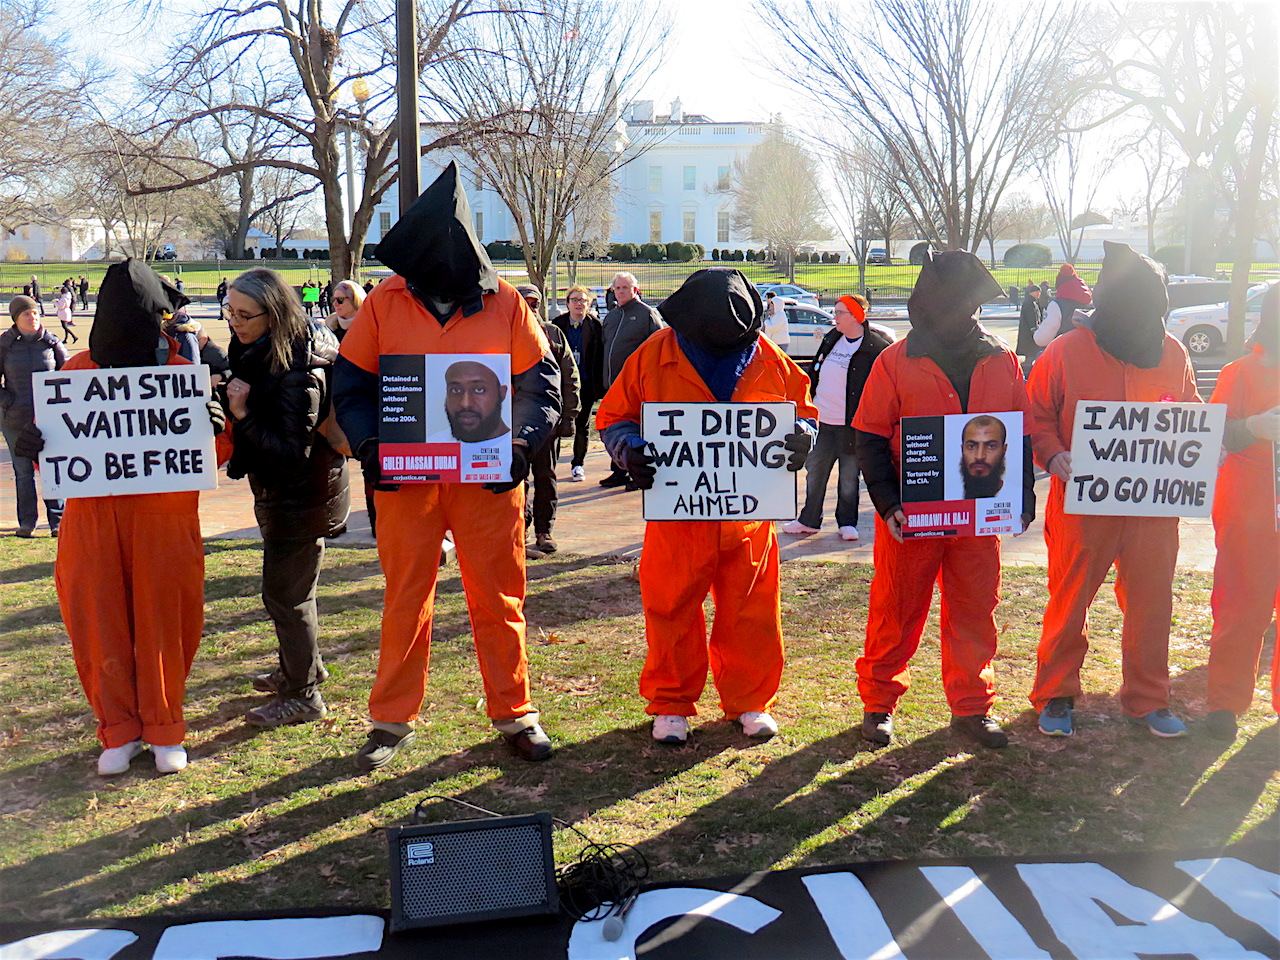 Witness Against Torture campaigners calling for the closure of Guantanamo at the annual vigil outside the White House on January 11, 2019, the 17th anniversary of the opening of the prison (Photo: Andy Worthington).